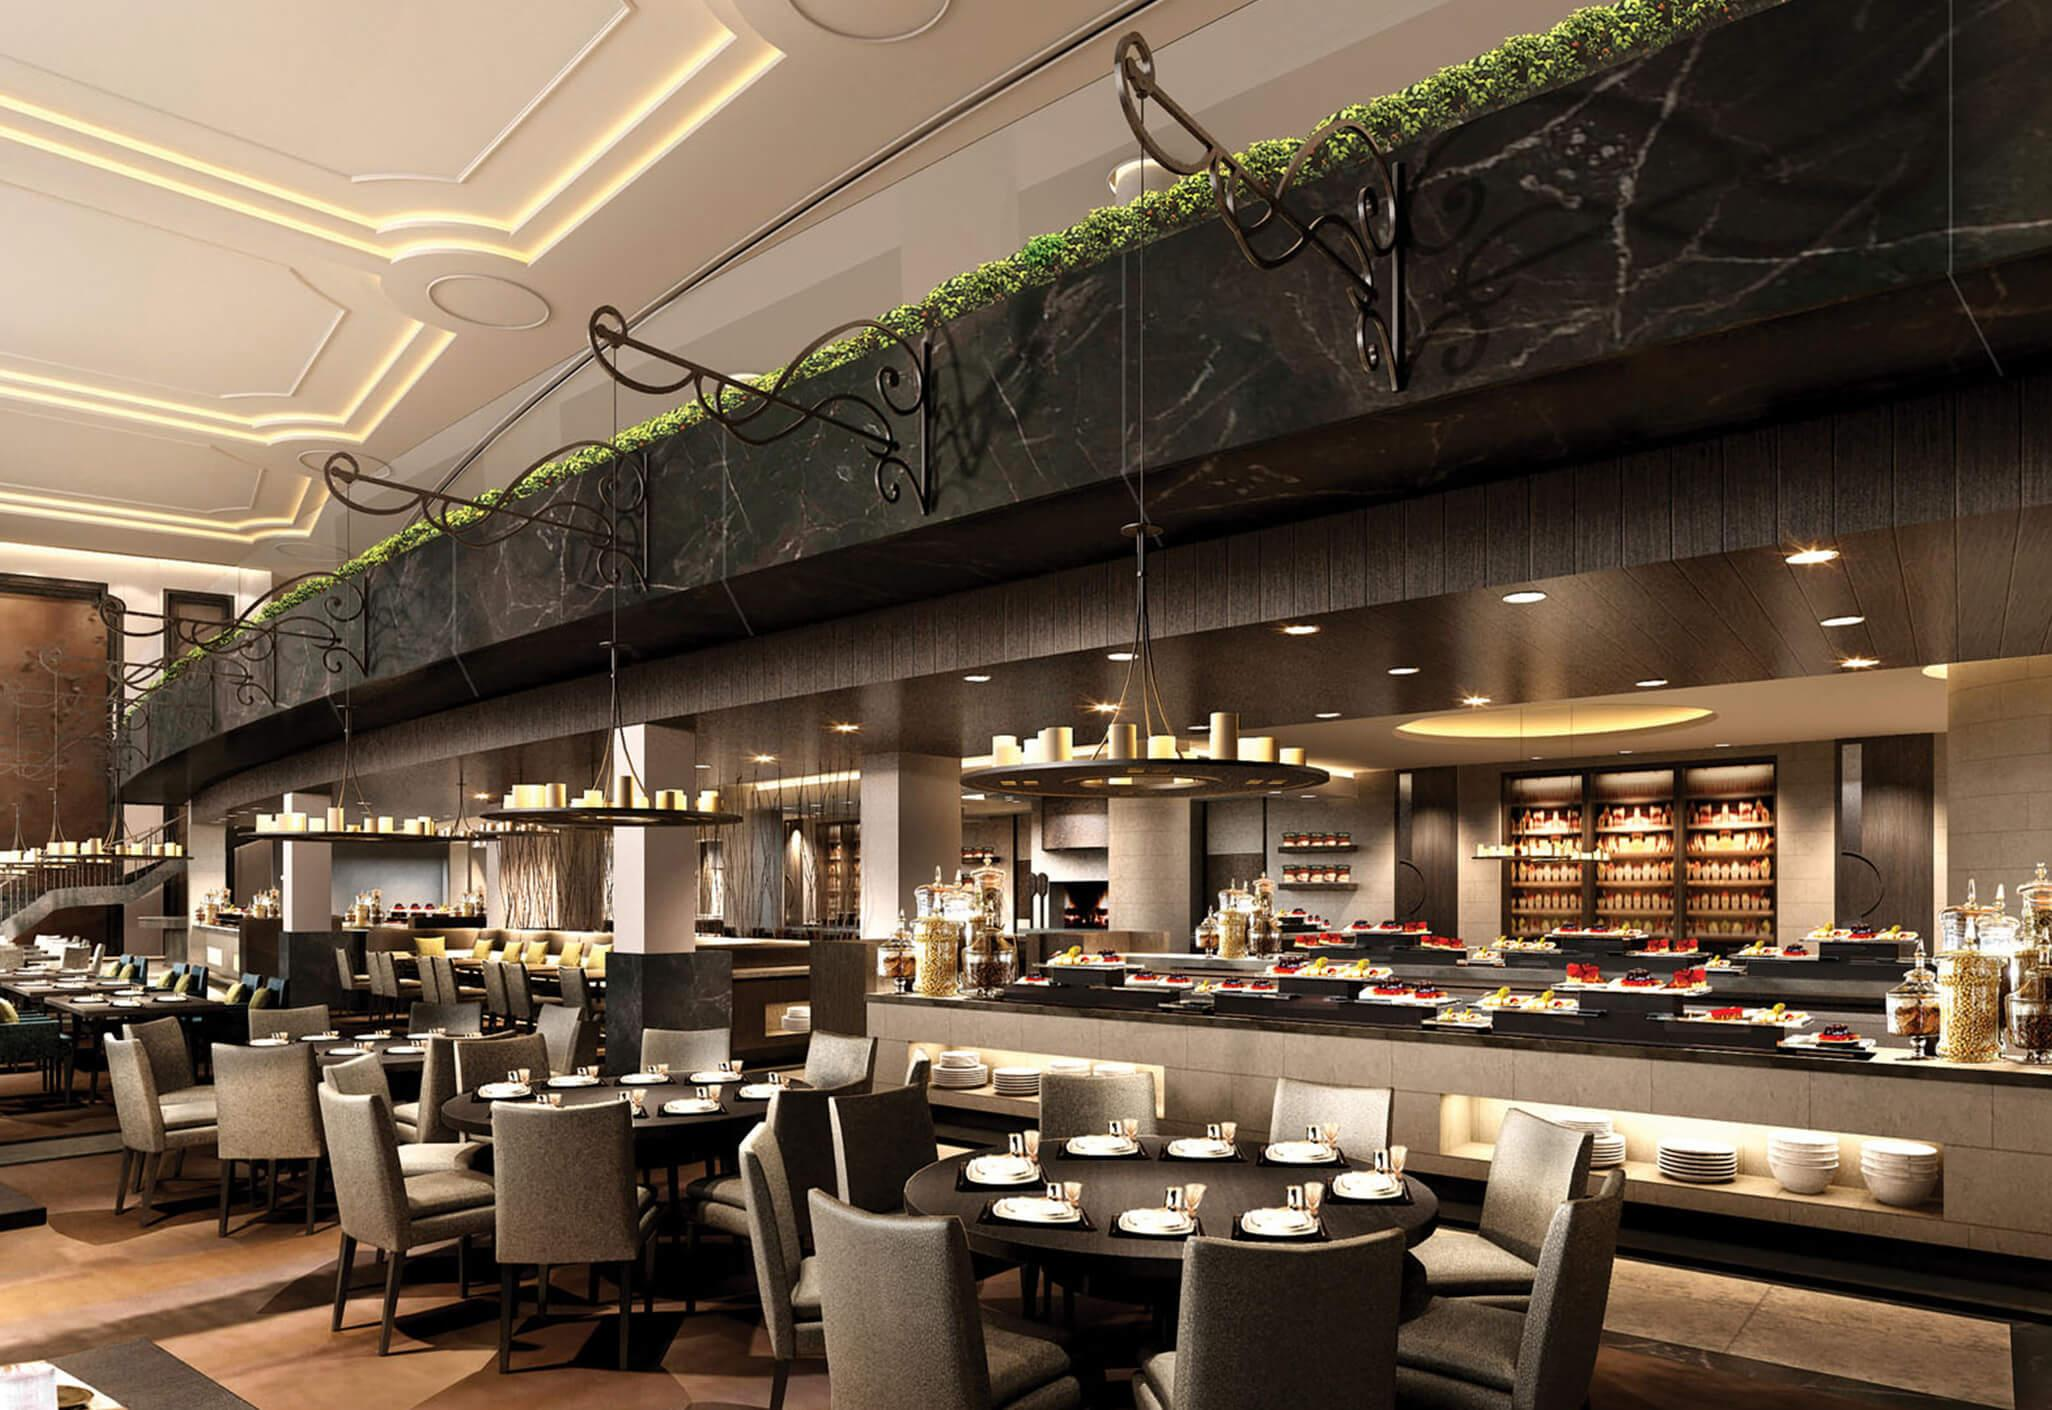 Buffet Cuisine Design All Day Dining Restaurant Aedas